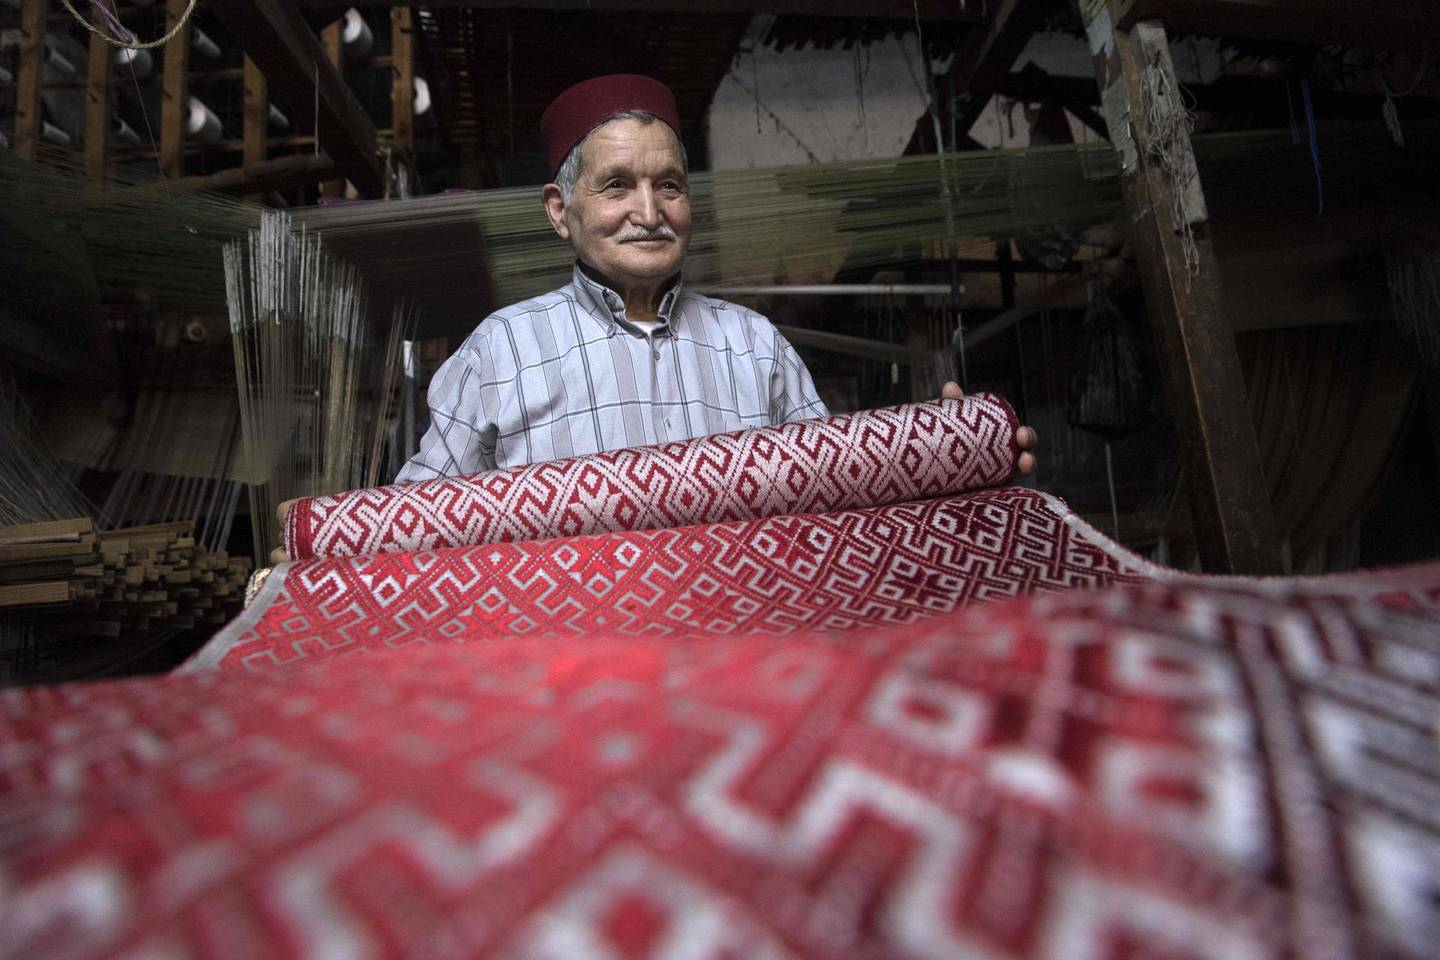 Abdelkader Ouazzani, the last of Morocco's brocade master weavers, displays tapestry at his workshop in the old city of Fes on April 10, 2019. His skillfull hands intricately create shimmering silk fabrics, enhanced with gold or silver thread, for bridal jewellery, designer creations or high-end furnishings. / AFP / FADEL SENNA